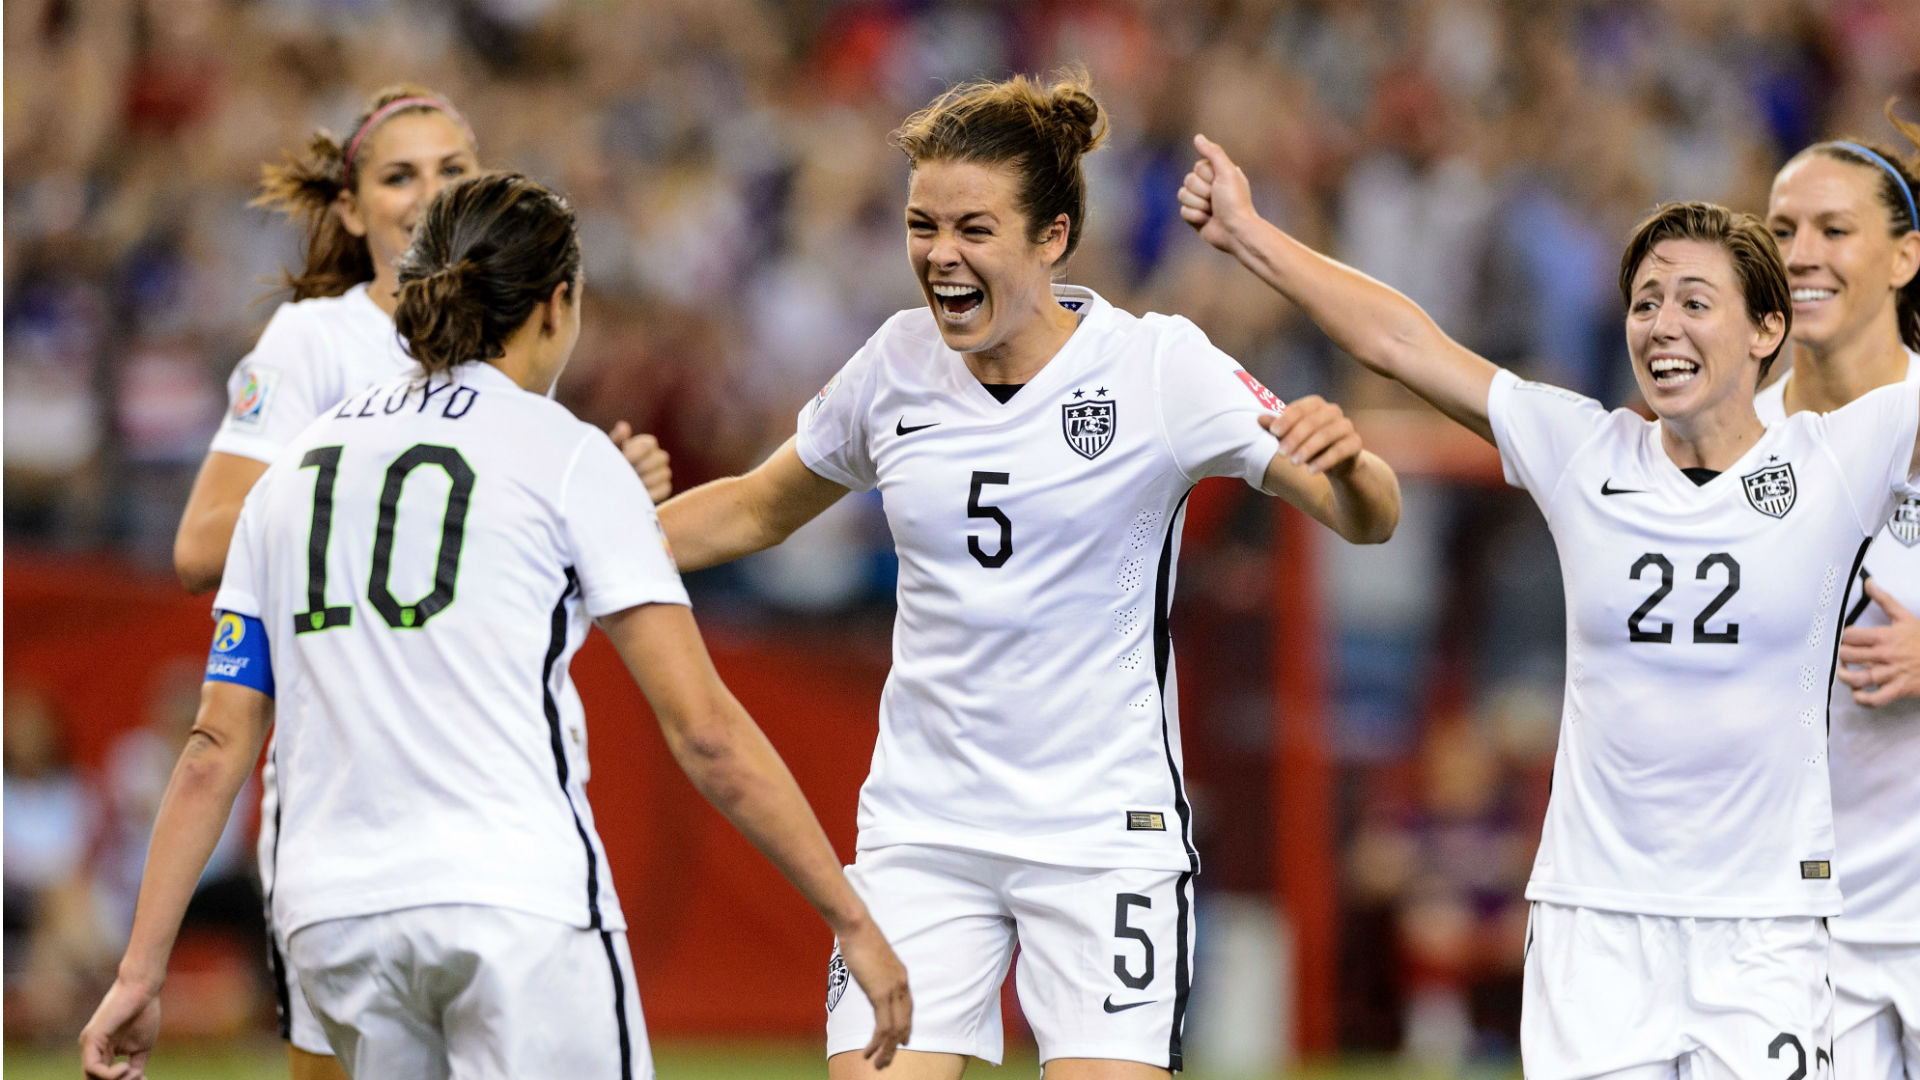 Women's World Cup Final, USA vs. Japan: Day, time, TV channel